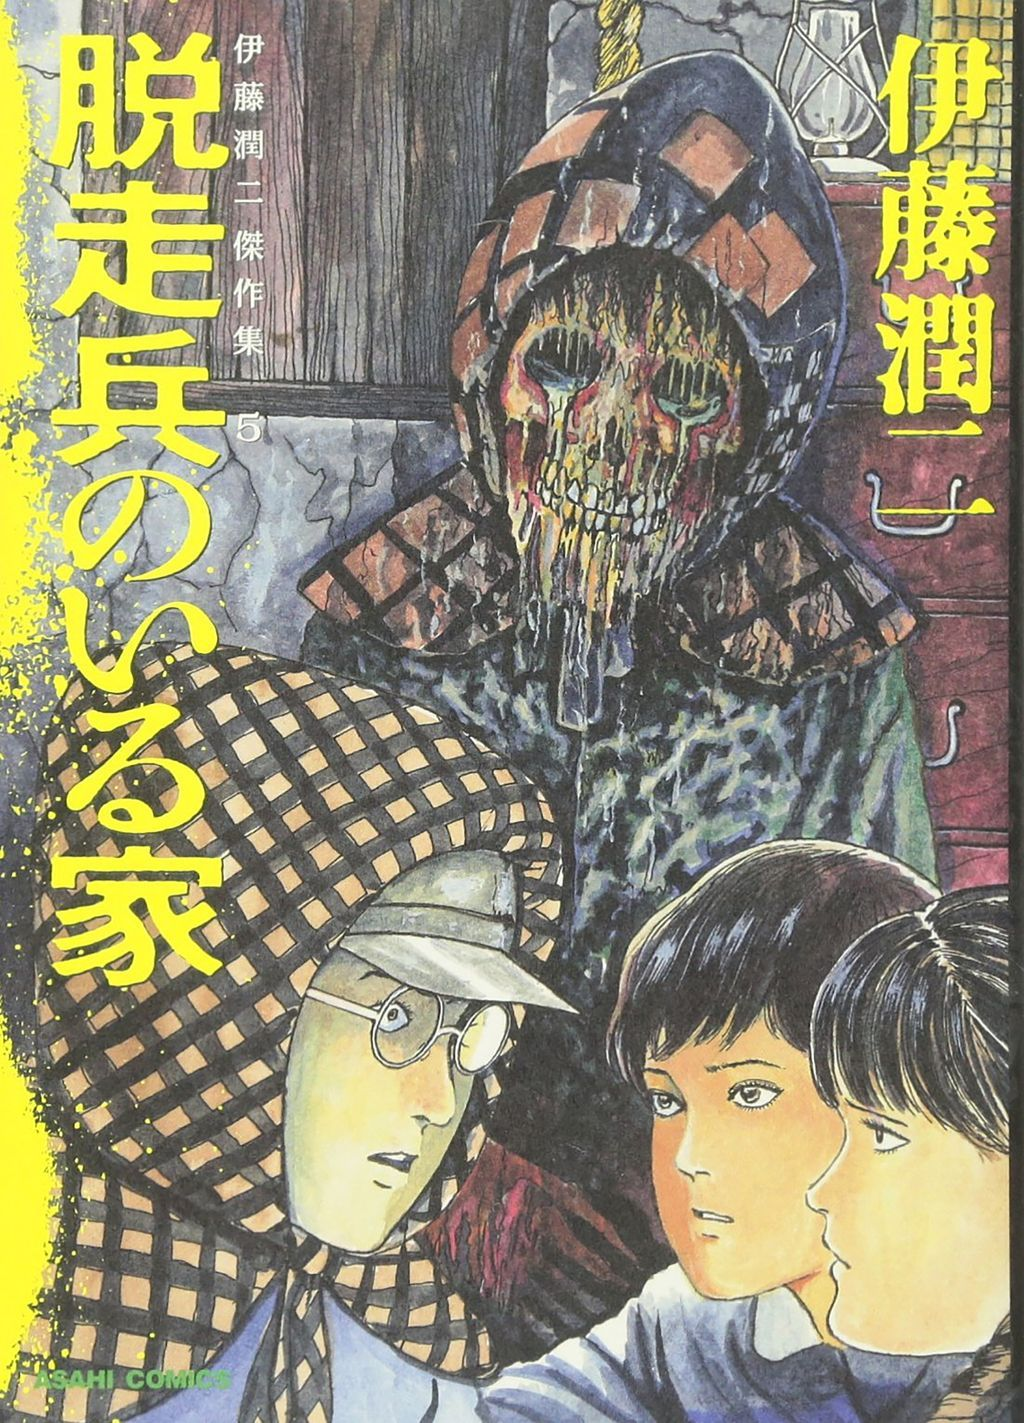 deserter junji ito story collection